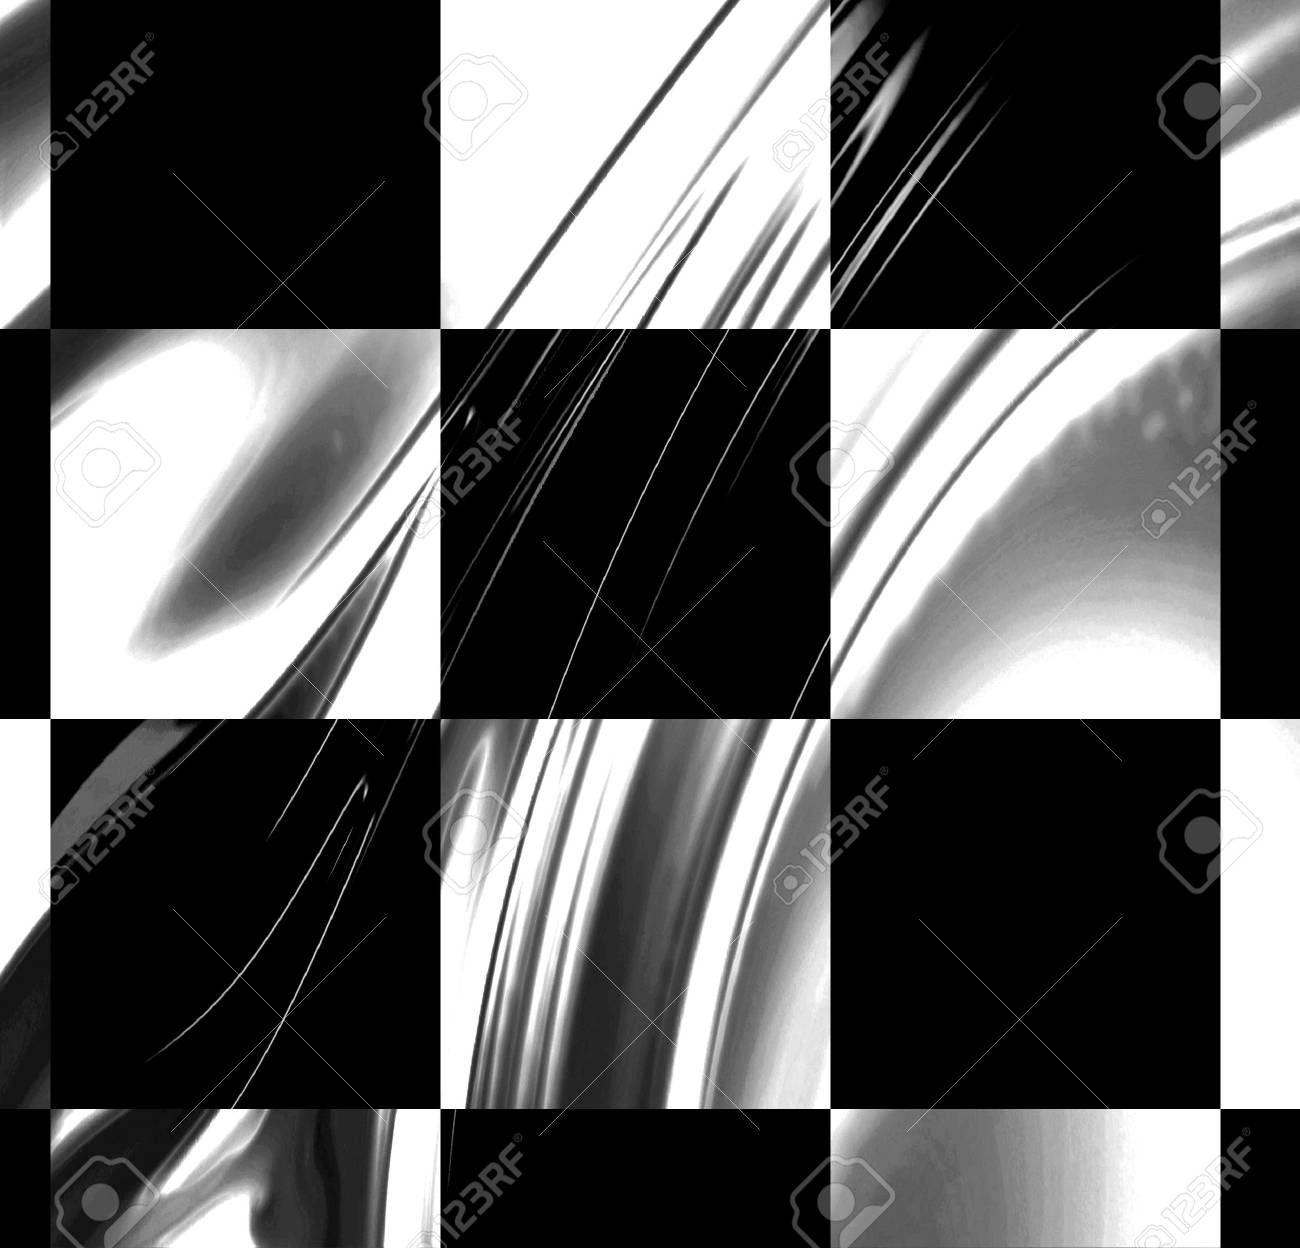 racing flag with some smooth folds in it Stock Photo - 3866319